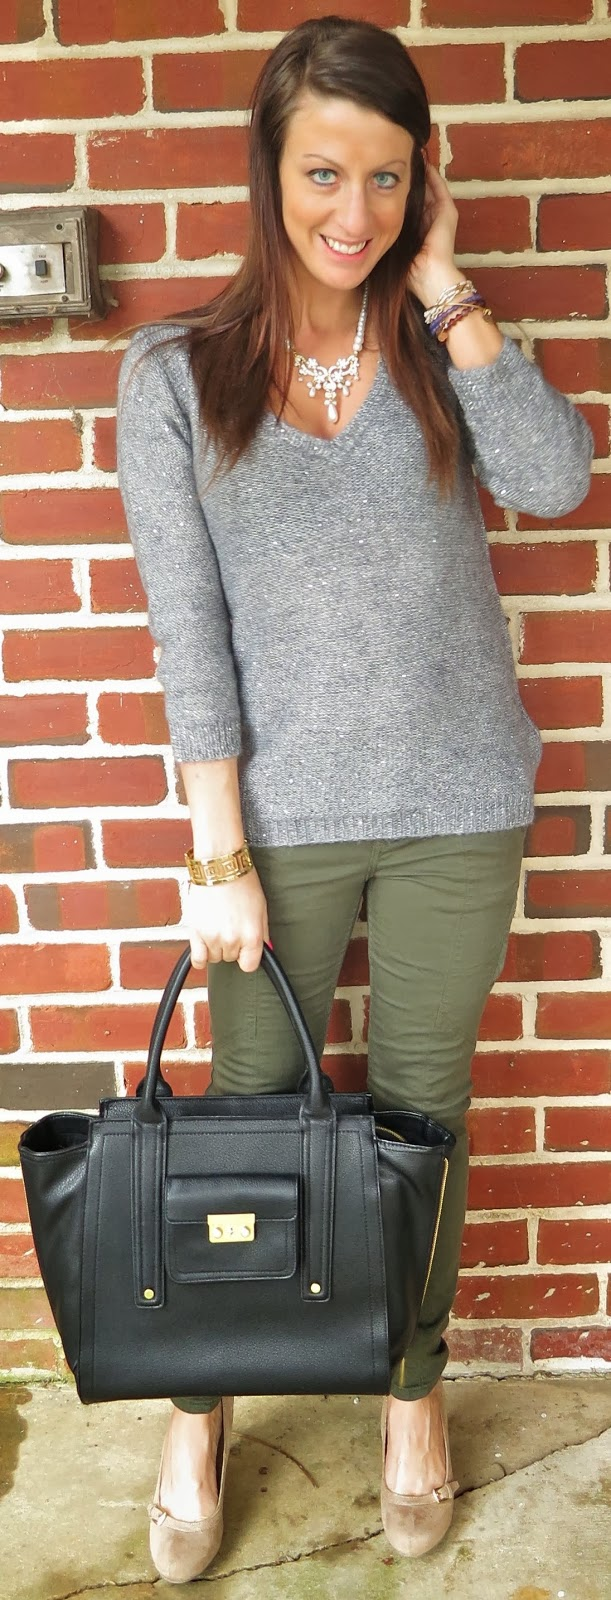 Fashion, green pants, ootd, Outfit Ideas, outfit of the day, Outfits, phillip lim for target, what i wore, zara,